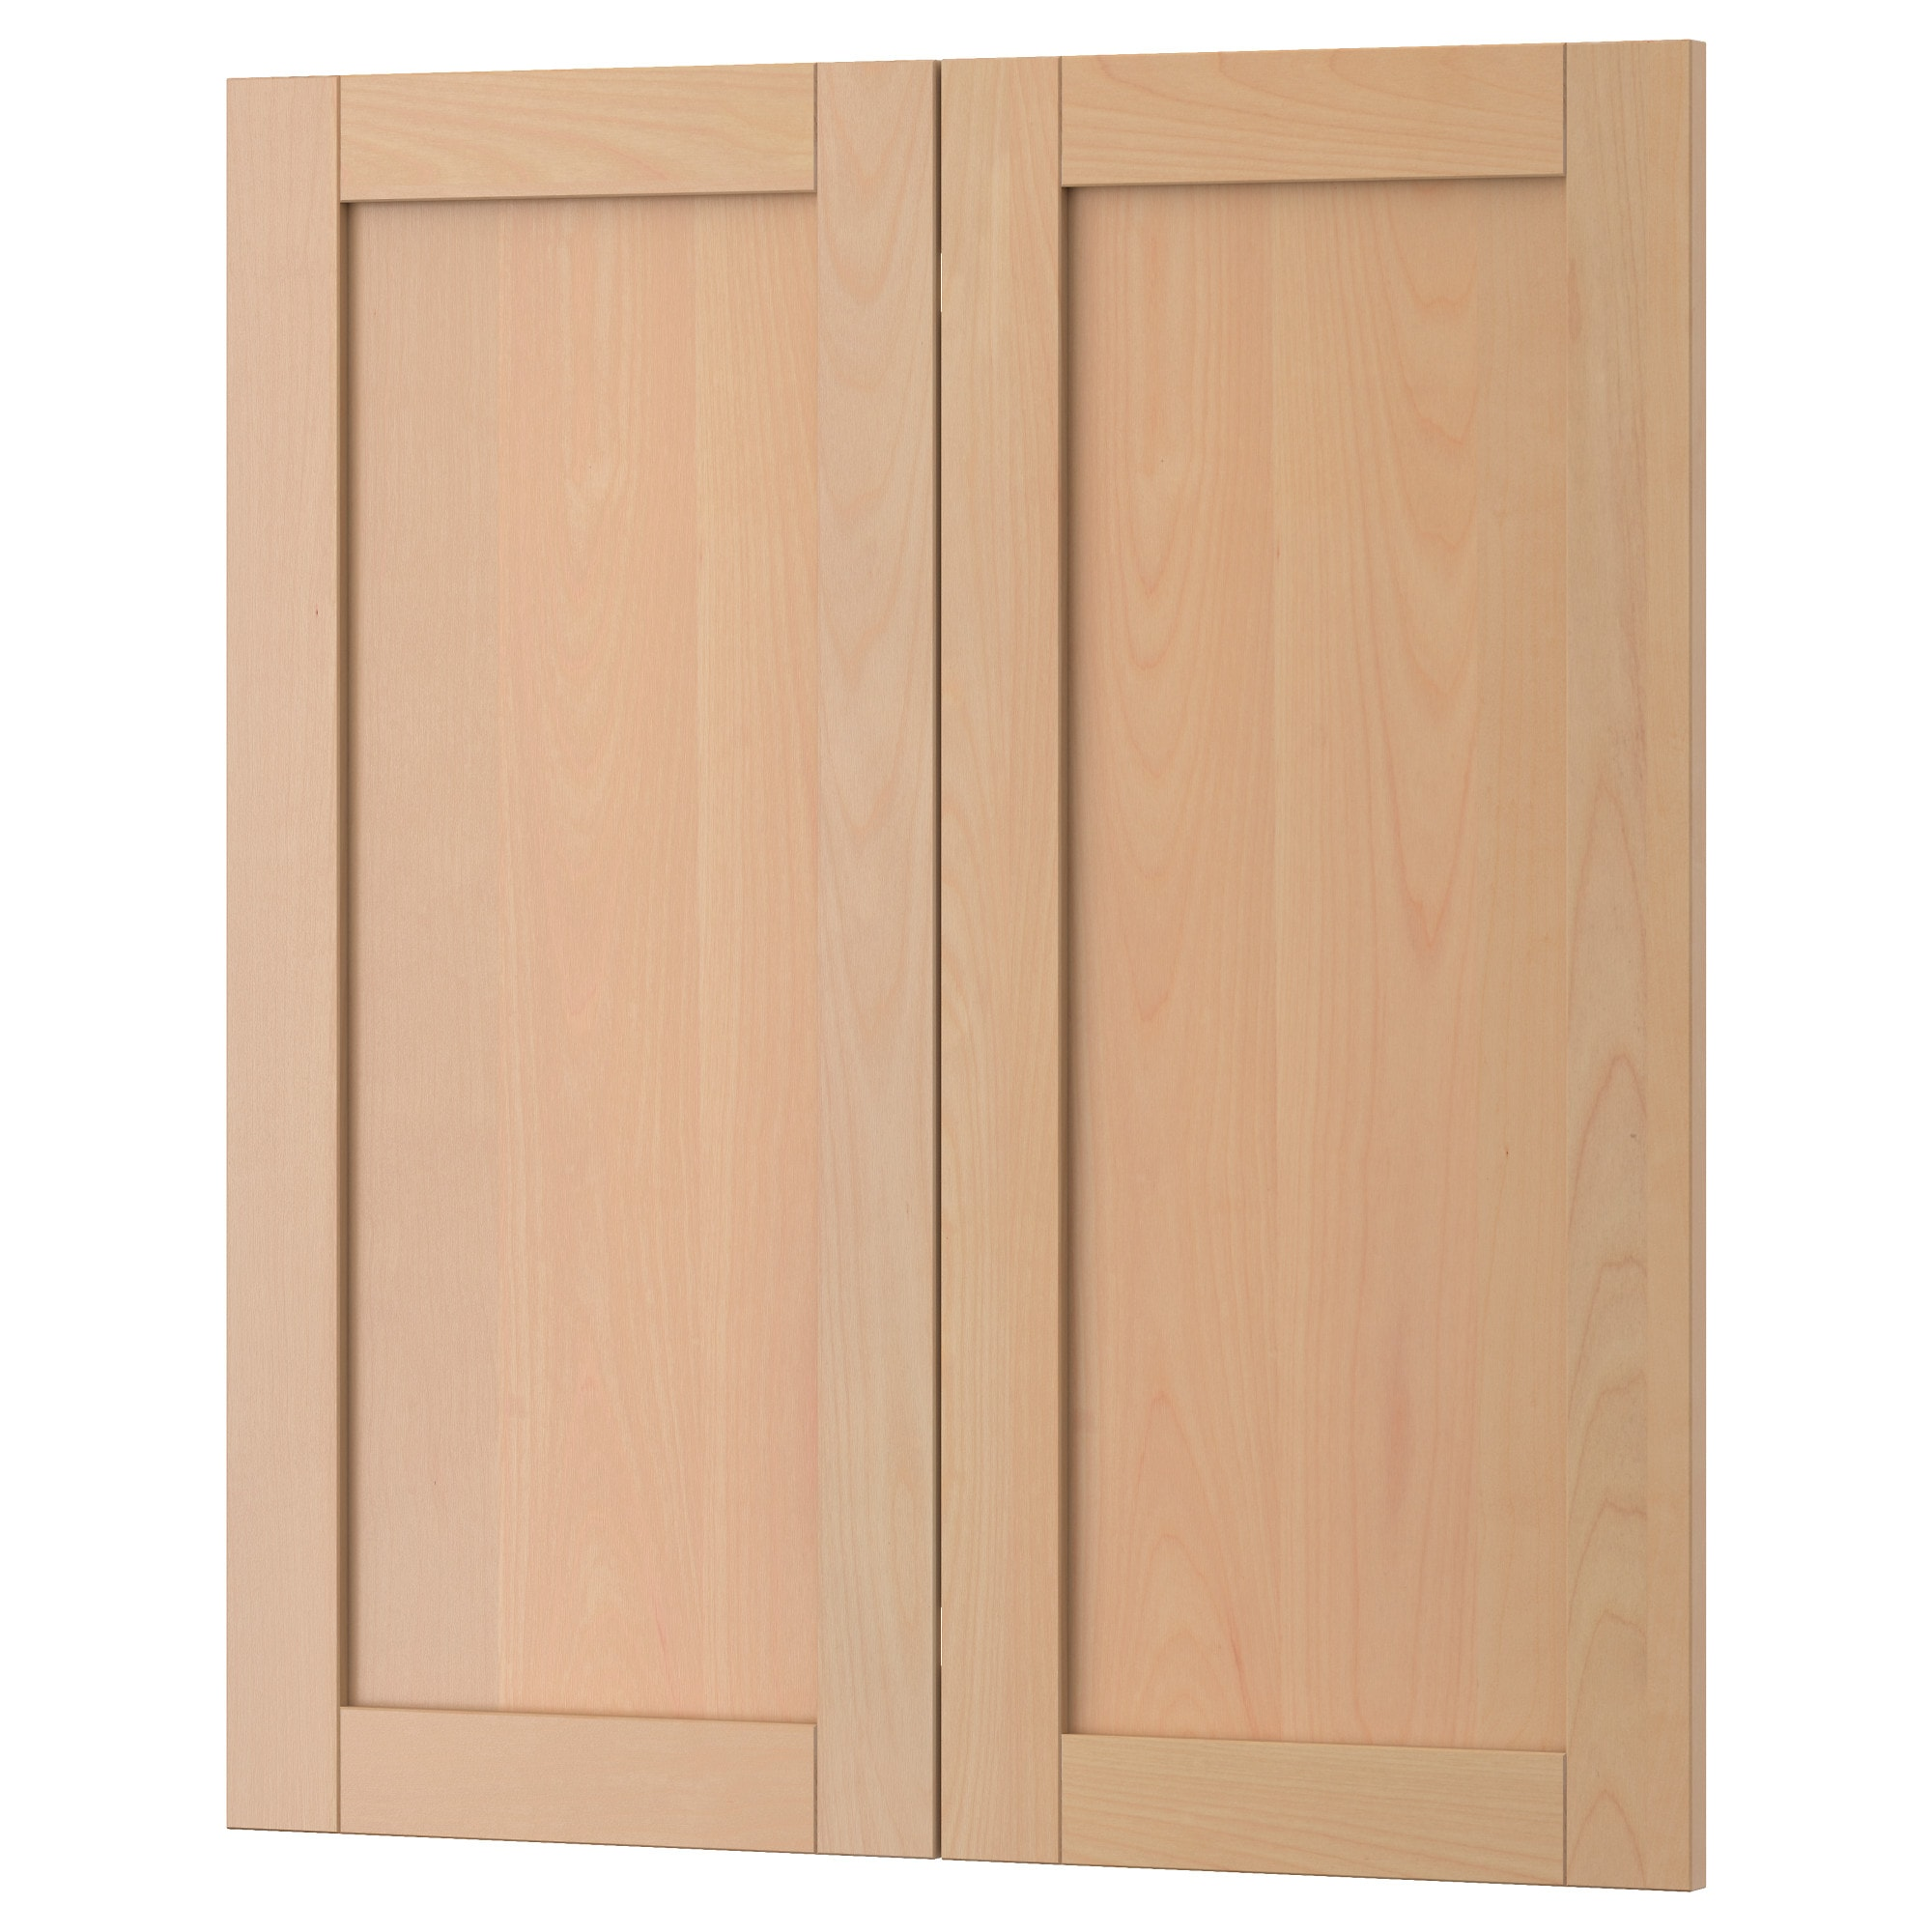 Ikea kitchen cabinet doors and drawers roselawnlutheran for Idea kitchen cabinet doors